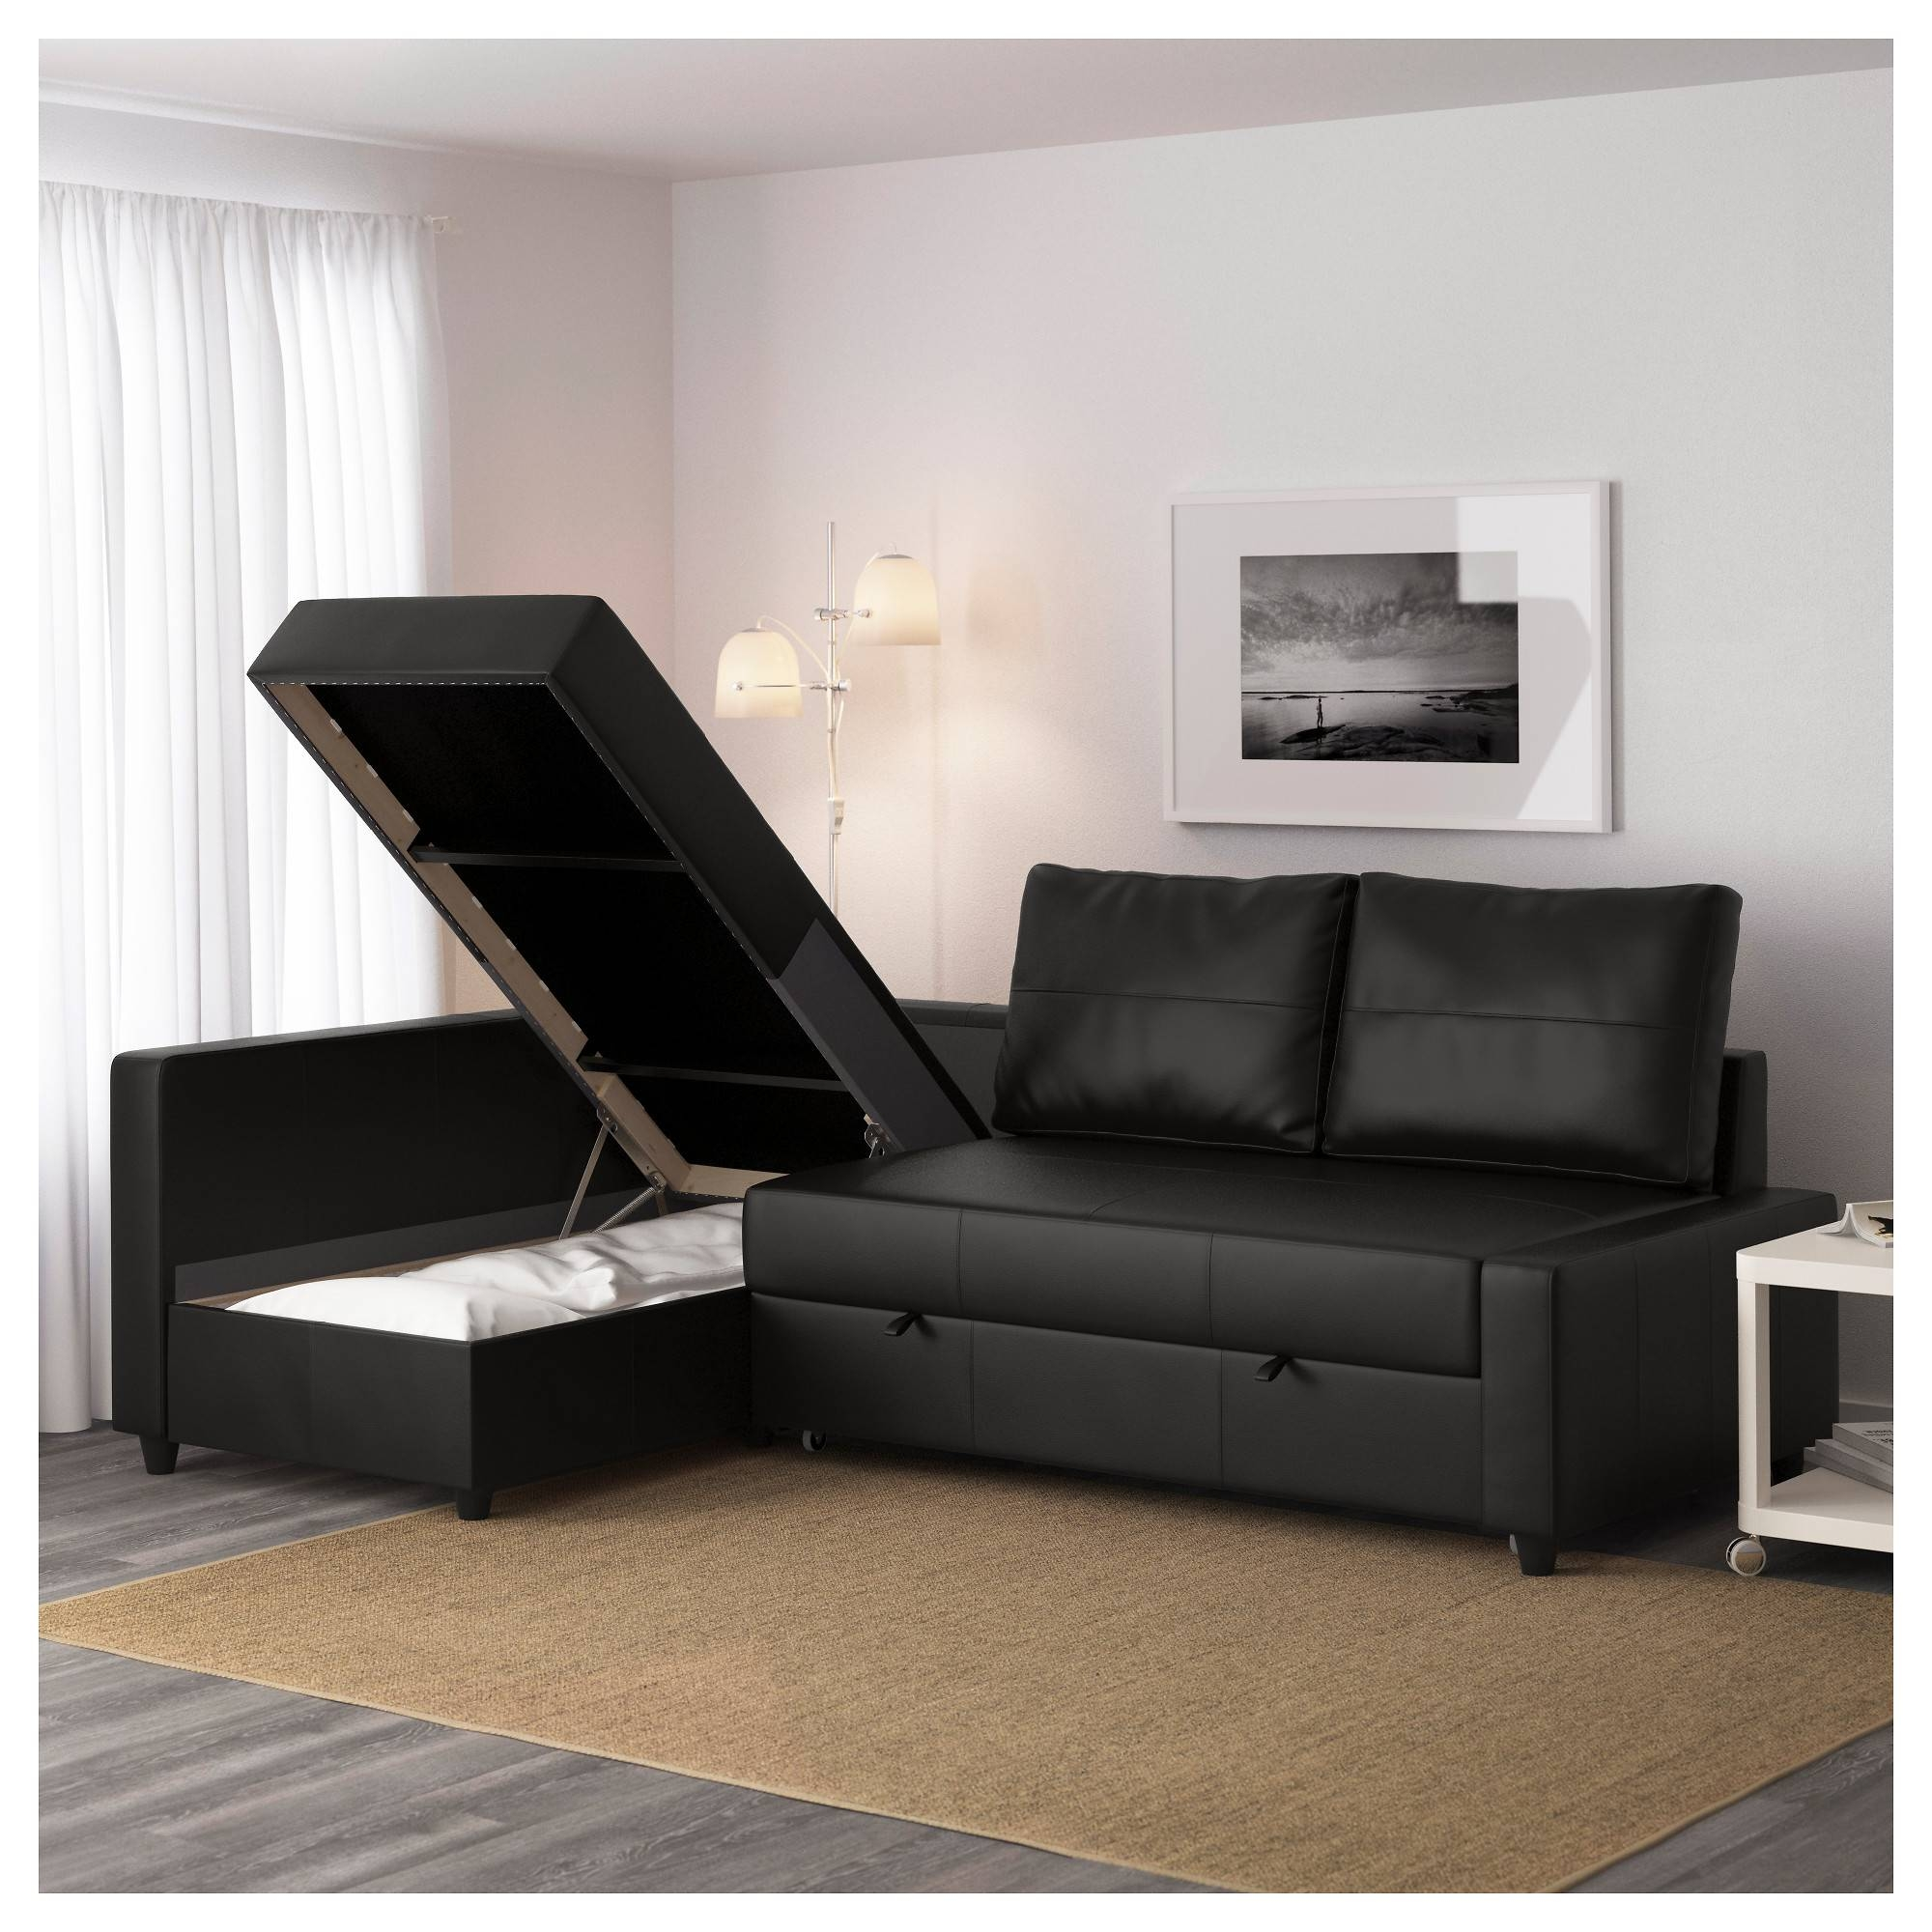 Friheten Sleeper Sectional,3 Seat W/storage – Skiftebo Dark Gray Within Sofa Beds With Chaise Lounge (View 5 of 15)